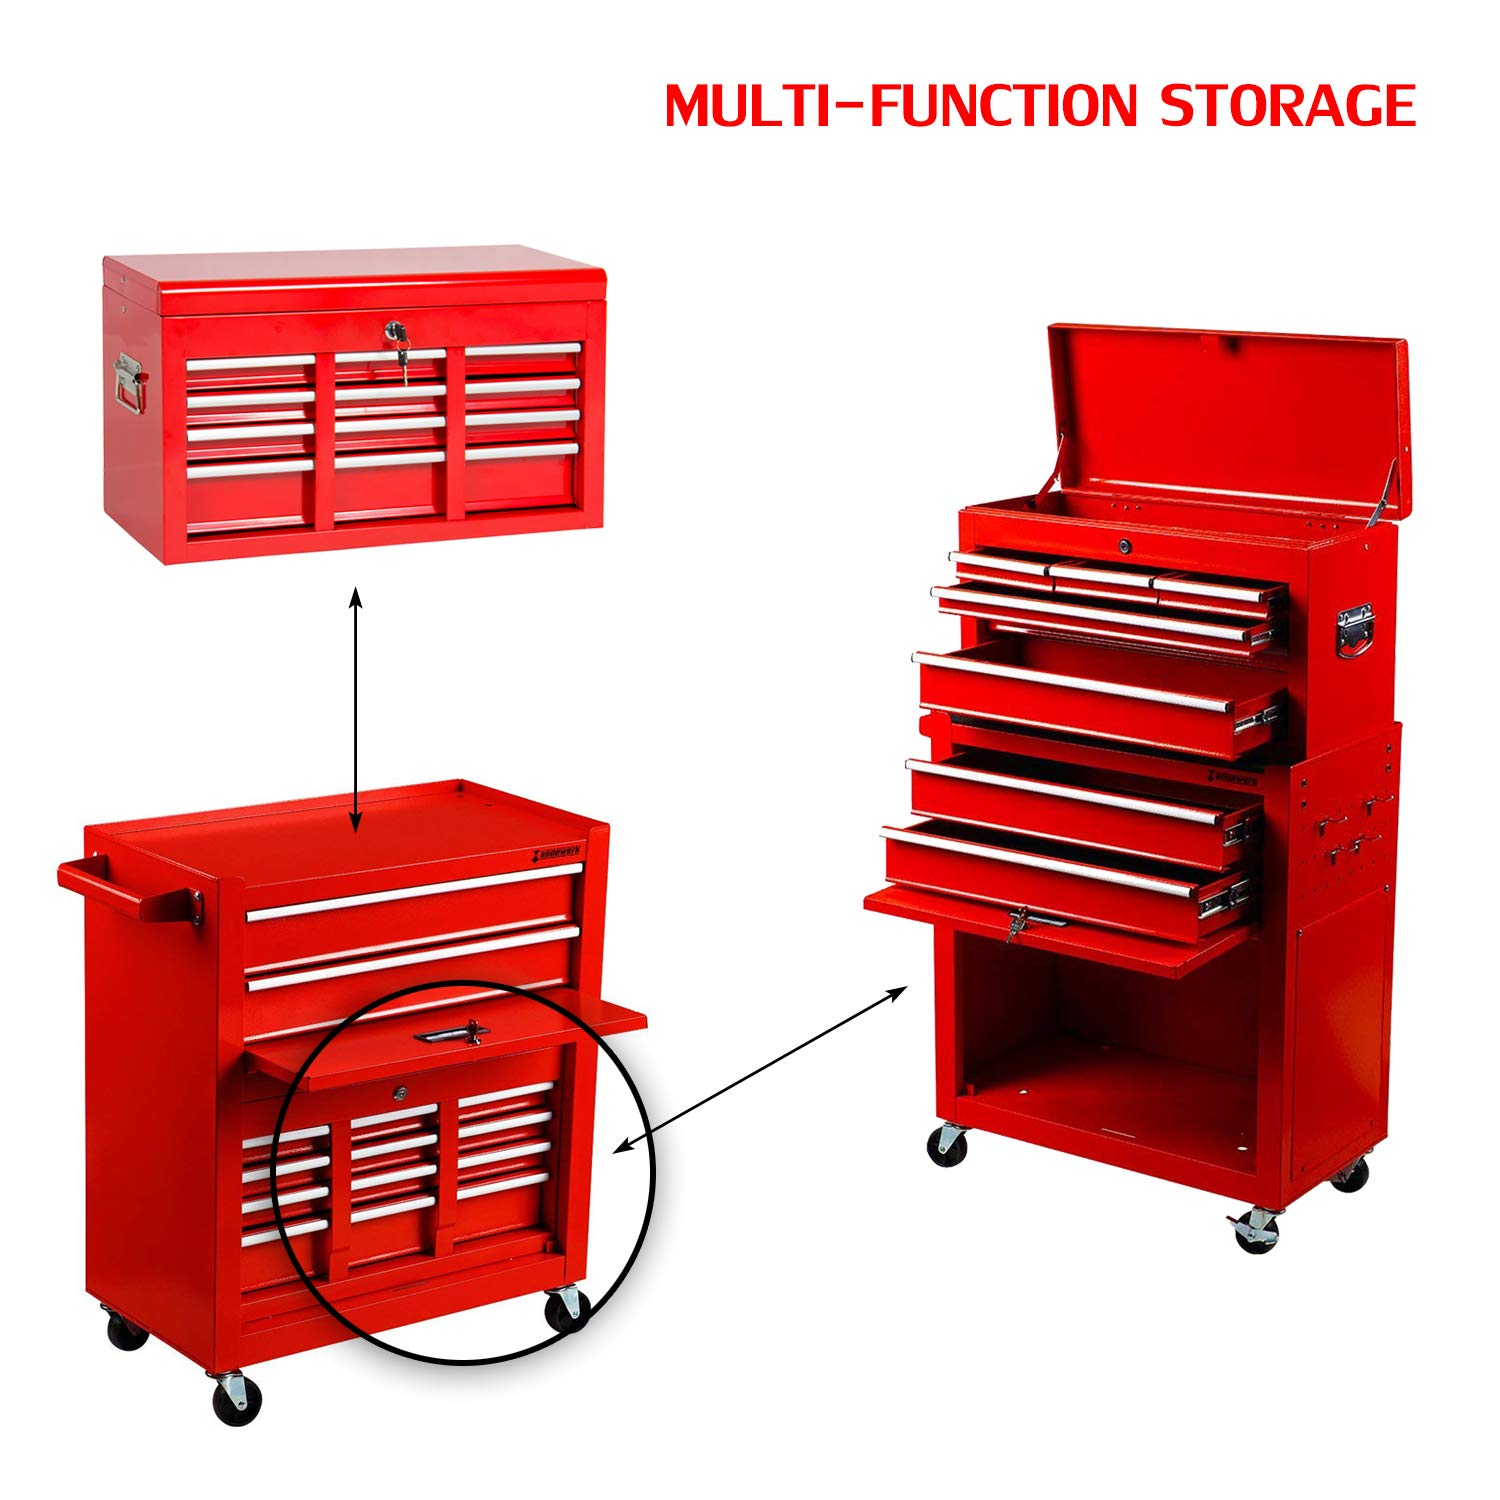 2Pcs Tool Storage Box Portable Top Chest Rolling Tool Box Organizer Sliding Drawers Cabinet Keyed Locking System Toolbox Red Suny Deals